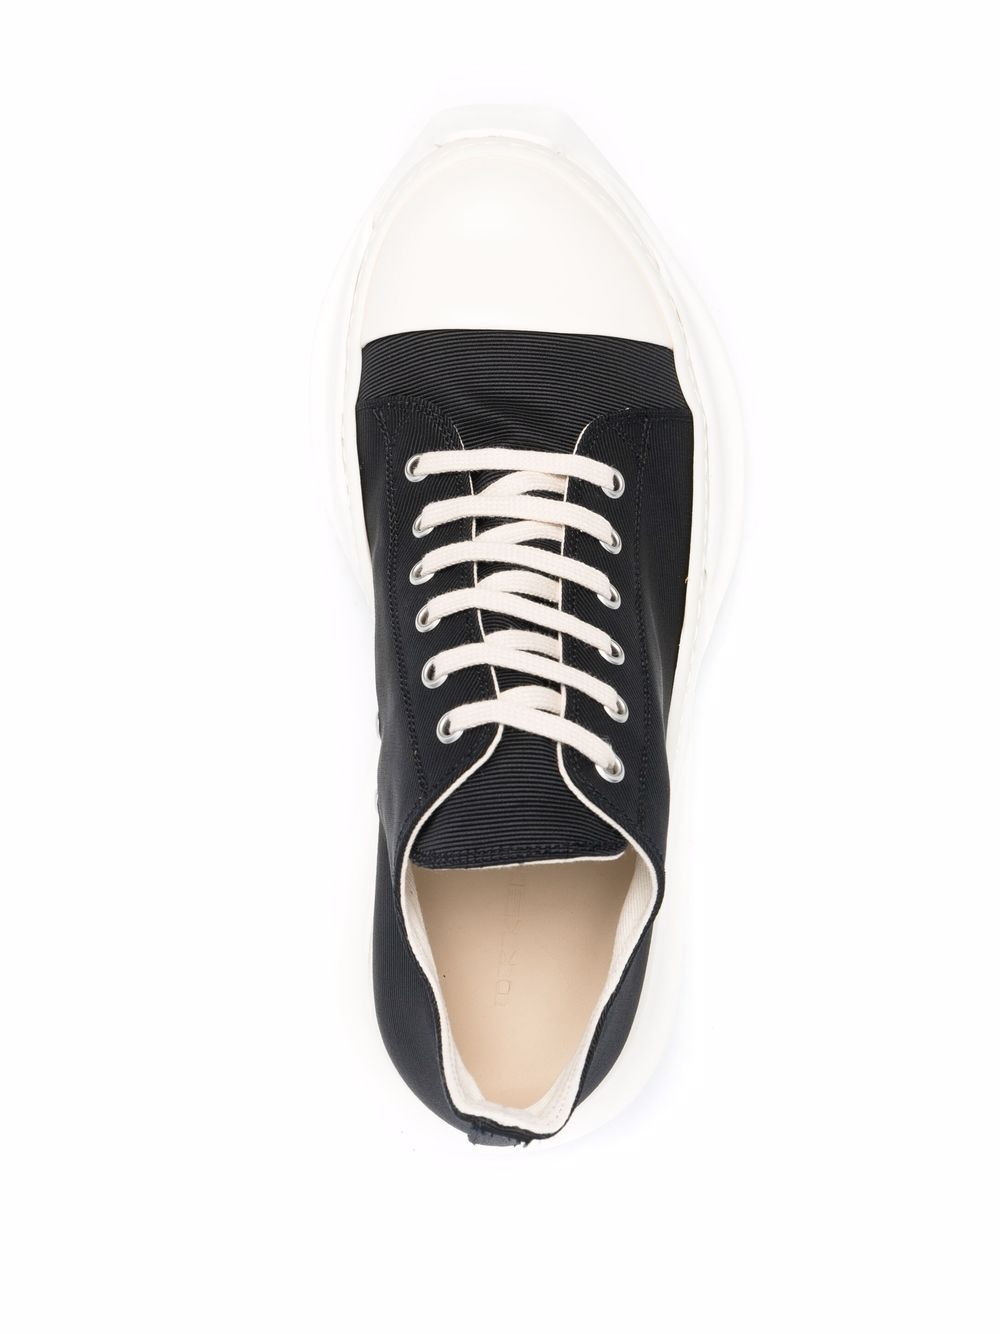 abstract sneakers man black in cotton RICK OWENS DRKSHDW | Sneakers | DU02A3842 FC9111